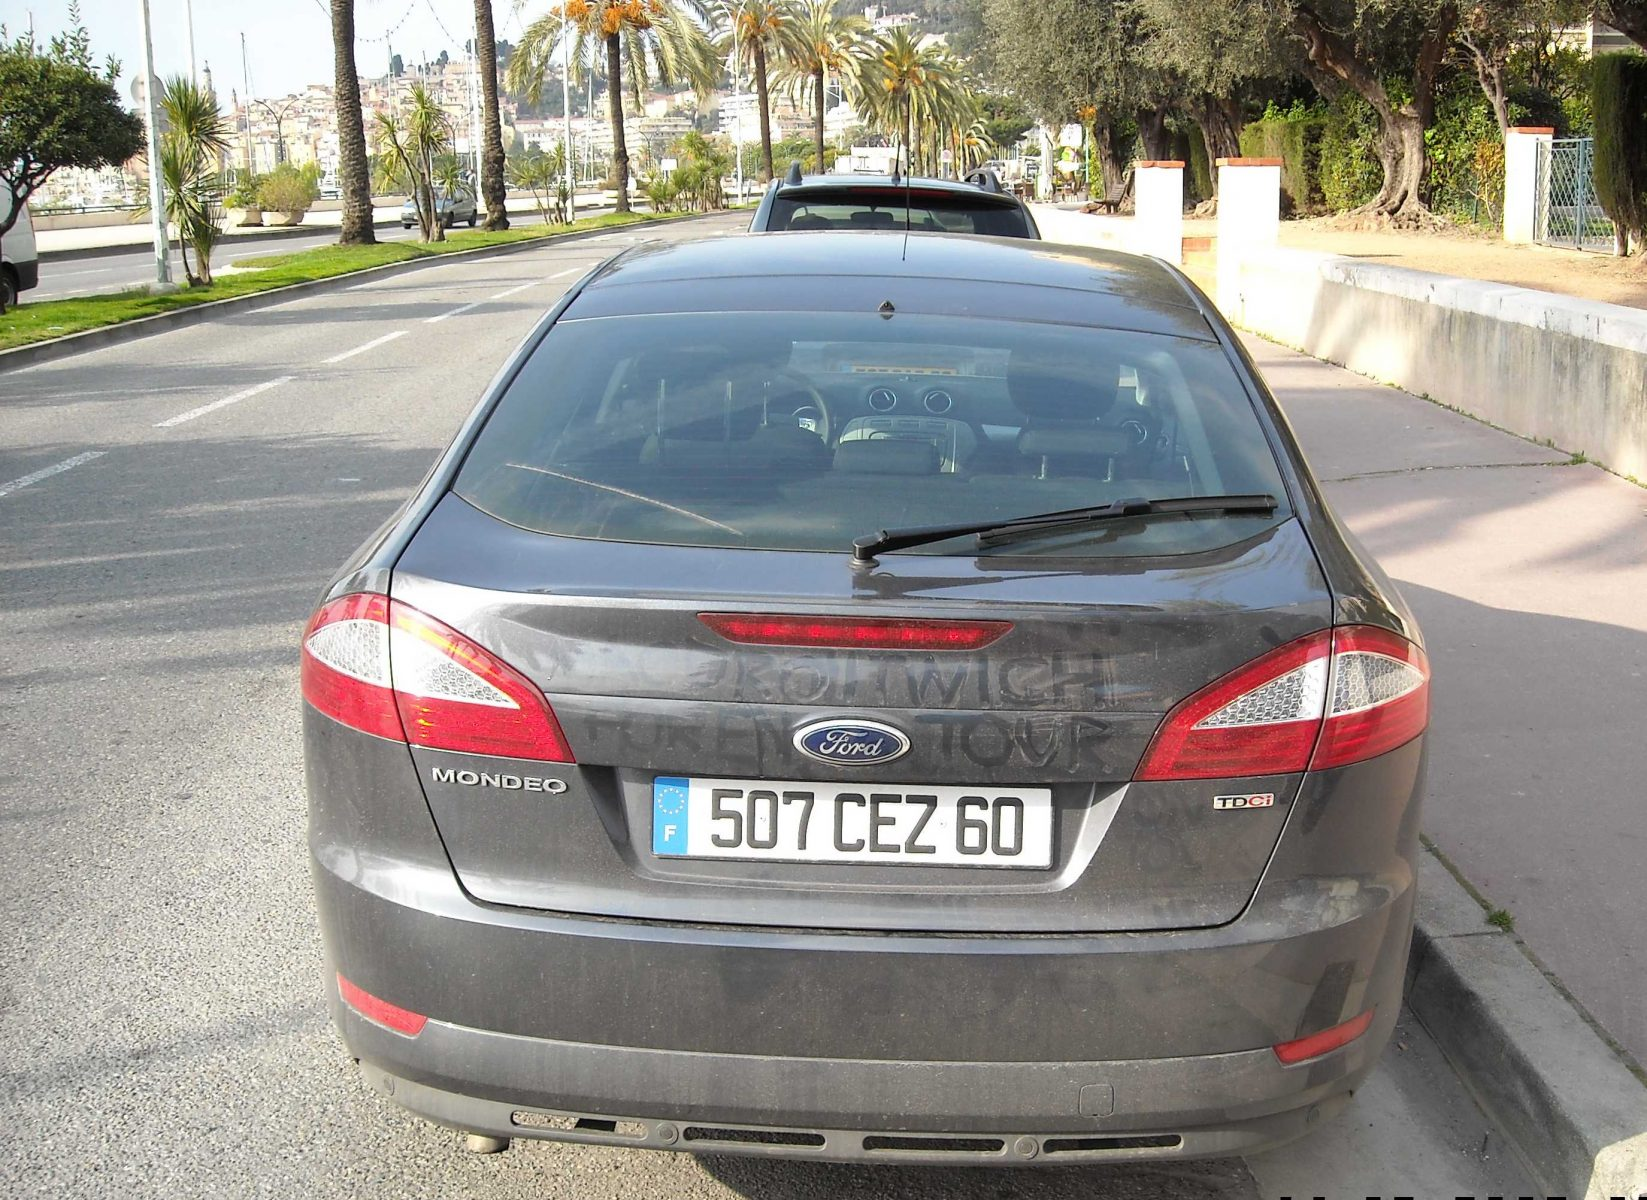 Our Mondeo in Menton, ready for some Cote d'Azur fun